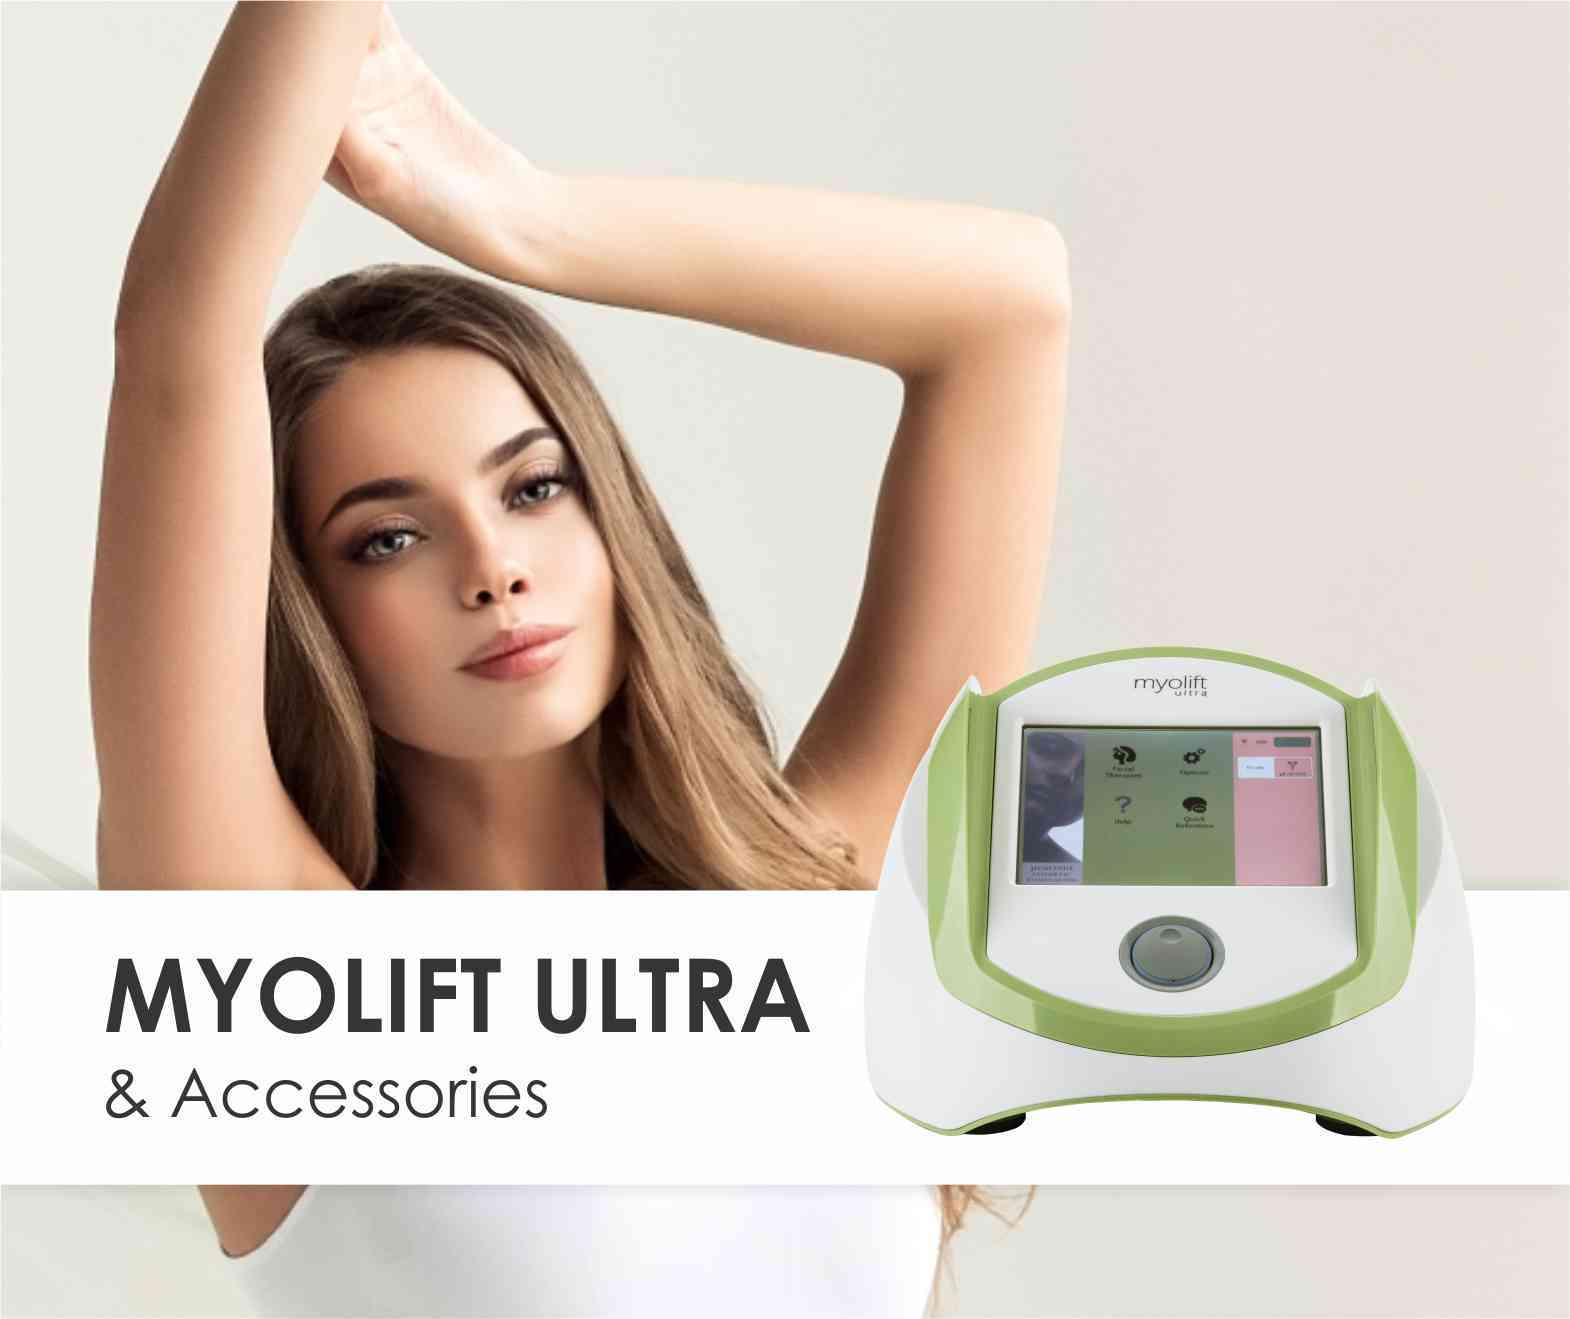 Myolift Ultra and accessories